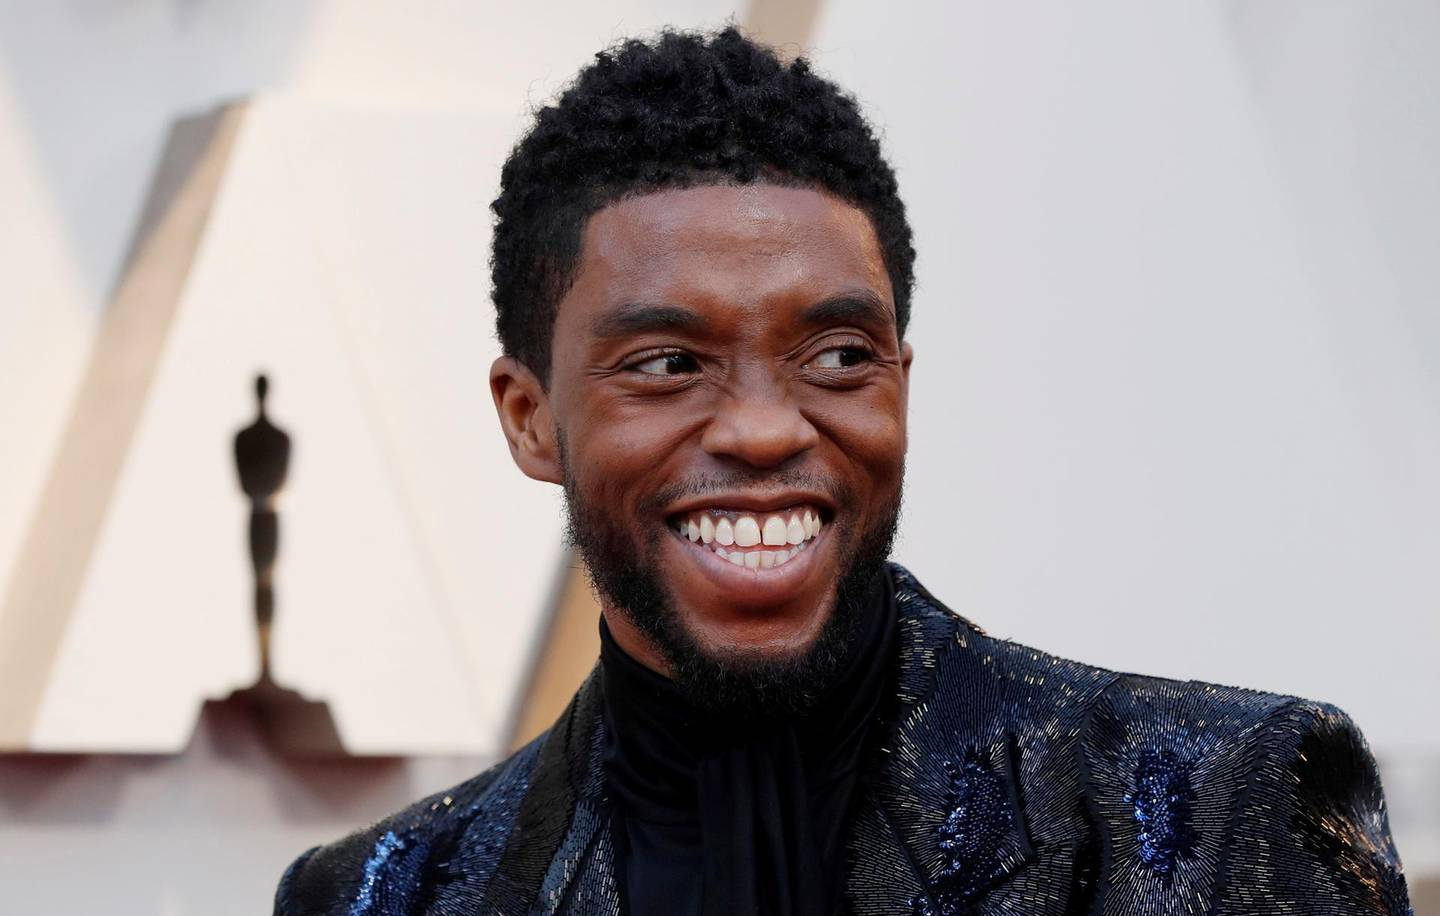 """FILE PHOTO: 91st Academy Awards - Oscars Arrivals - Red Carpet - Hollywood, Los Angeles, California, U.S., February 24, 2019.  Actor Chadwick Boseman of """"Black Panther"""" wears Givenchy. REUTERS/Mario Anzuoni/File Photo"""